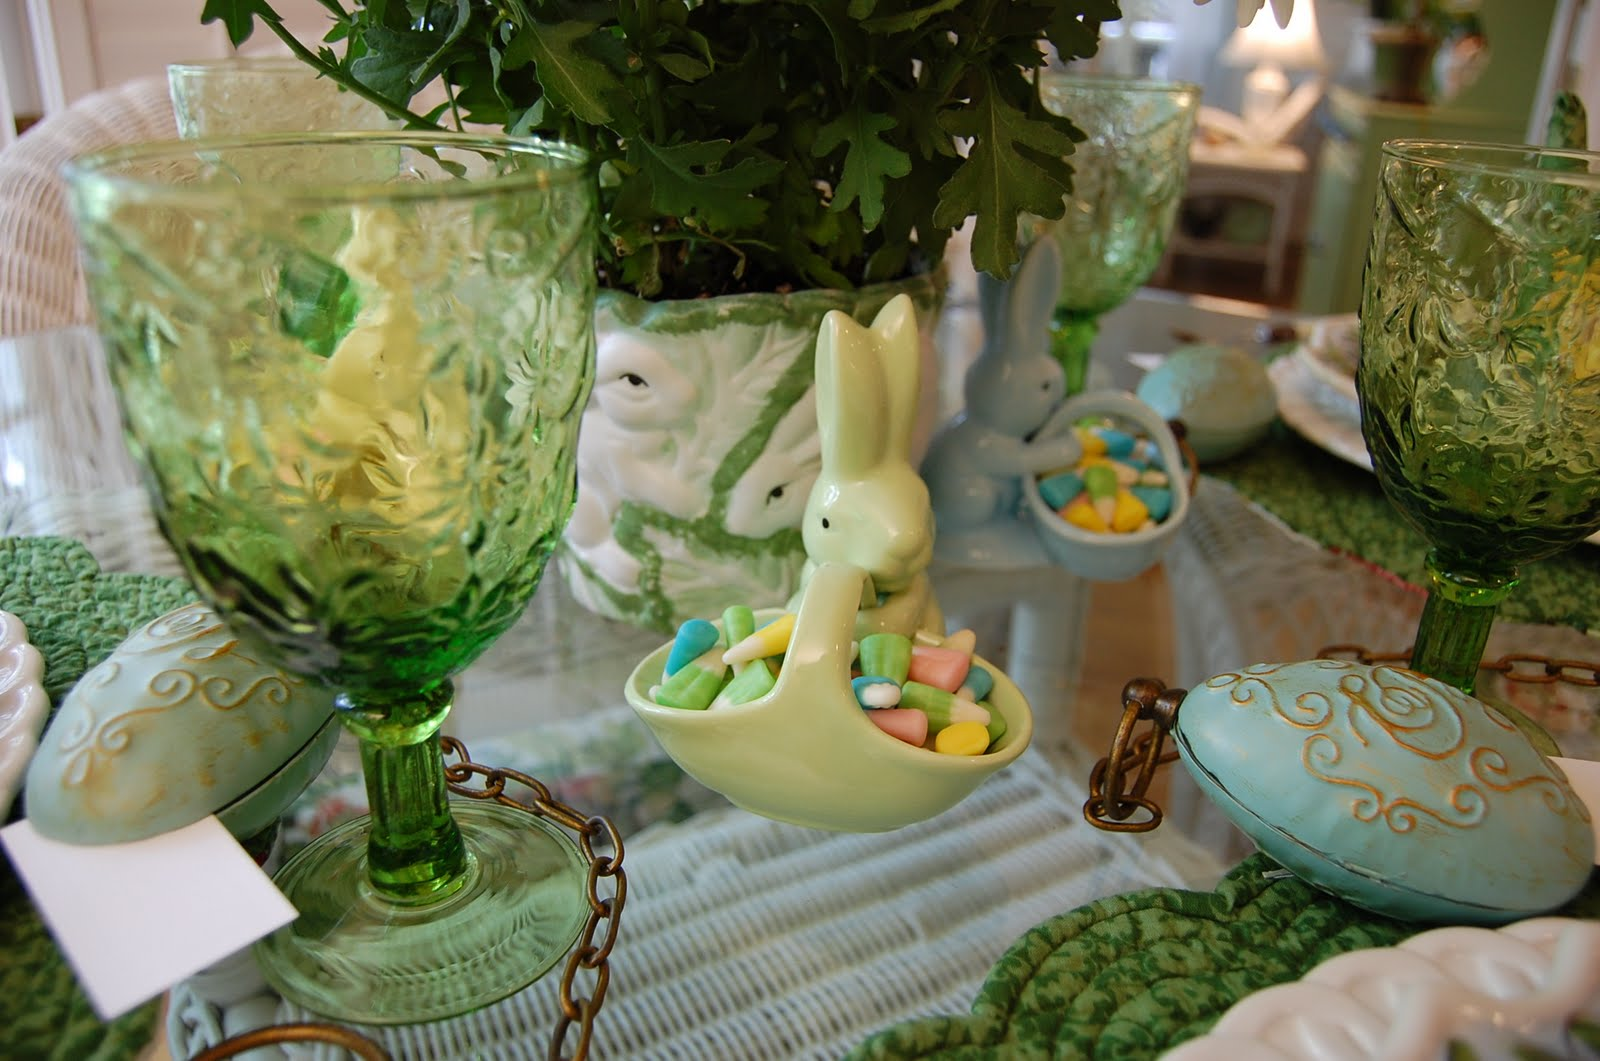 Easter Centerpieces 6155 : Easter Centerpieces from qnud.com size 1600 x 1061 jpeg 185kB